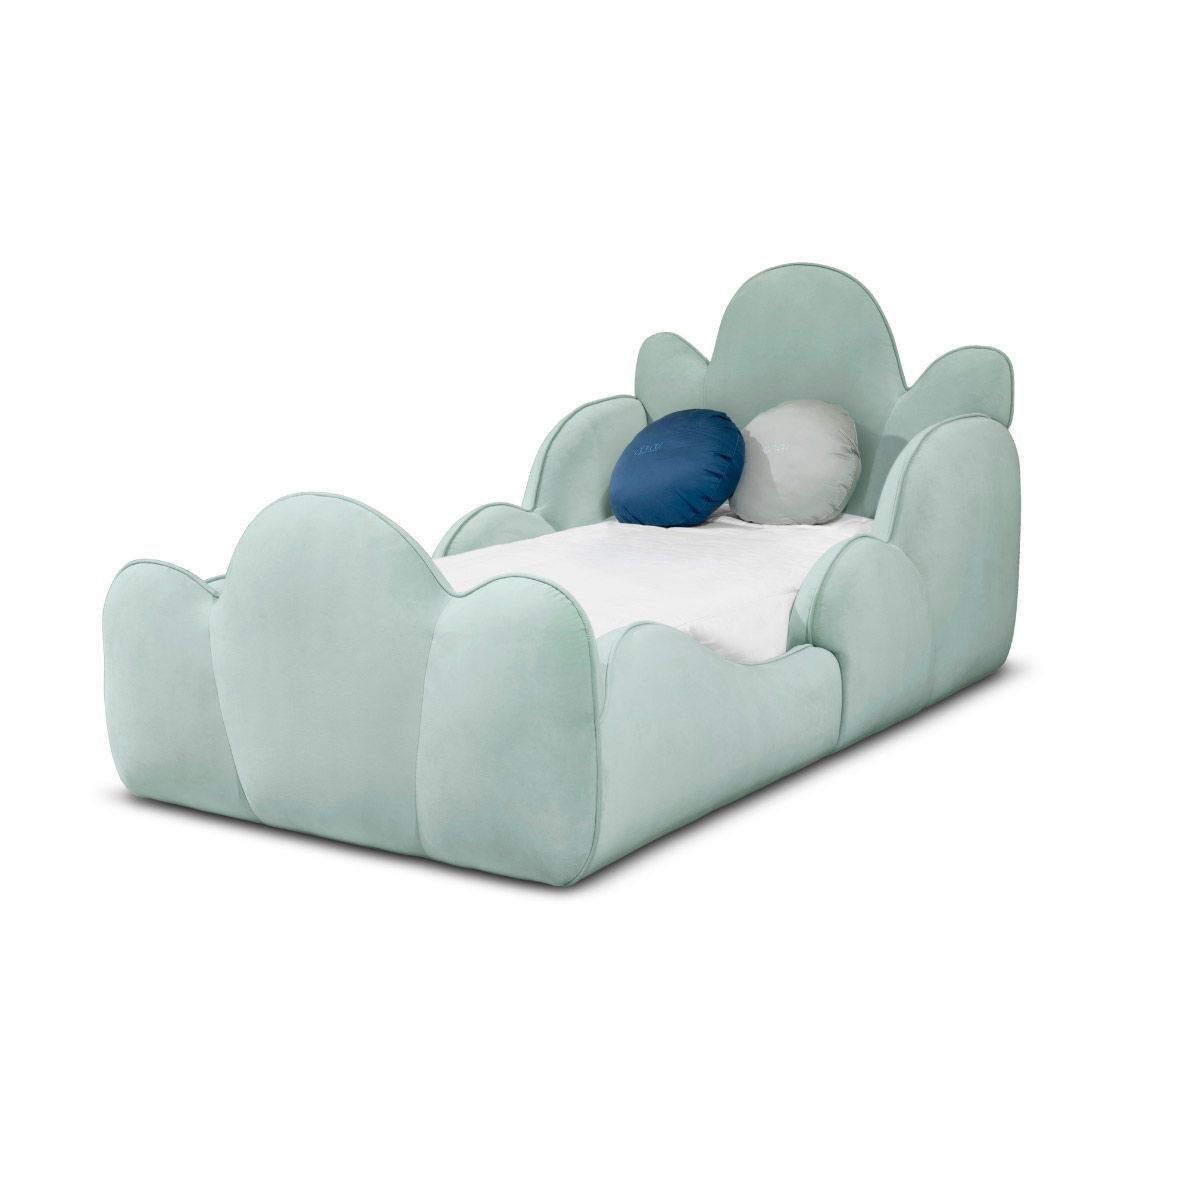 Kids Furniture: Special Discounts Only This Week! kids furniture Kids Furniture: Special Discounts Only This Week! 2 19